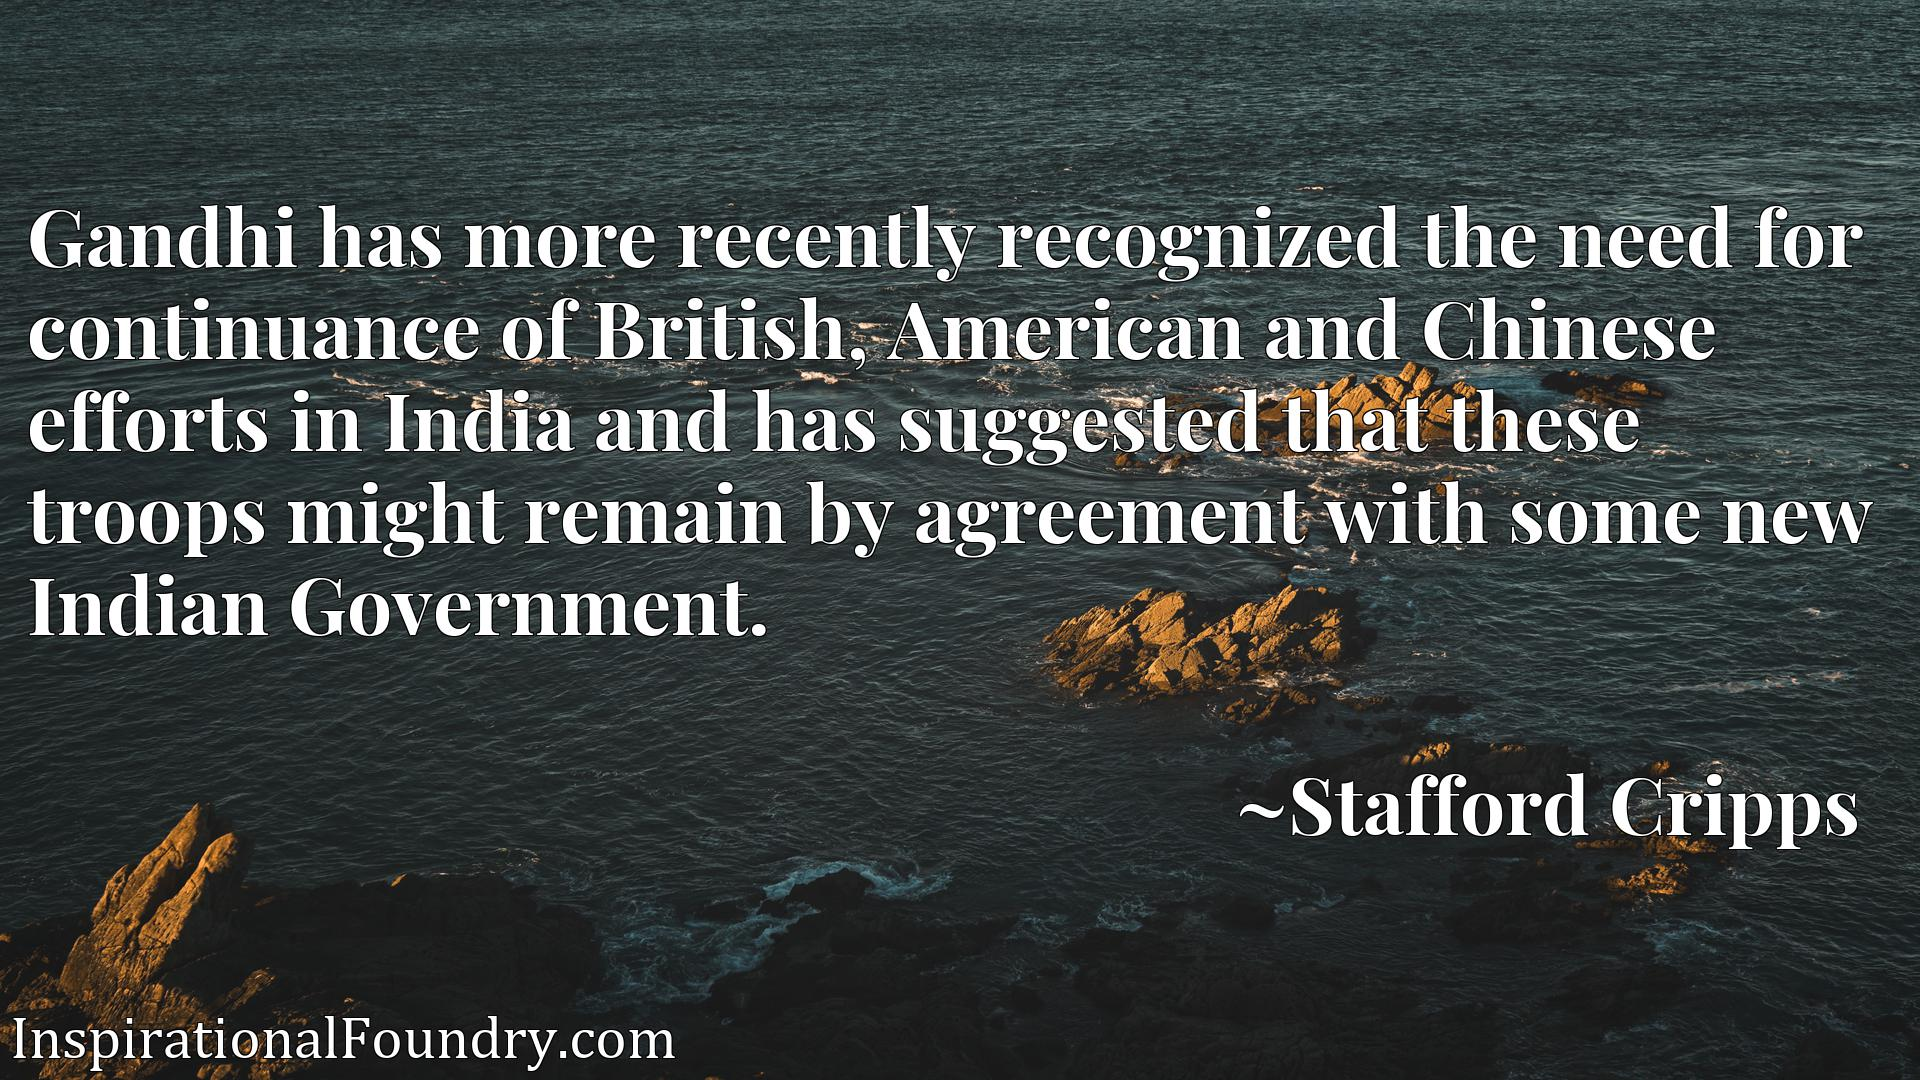 Gandhi has more recently recognized the need for continuance of British, American and Chinese efforts in India and has suggested that these troops might remain by agreement with some new Indian Government.